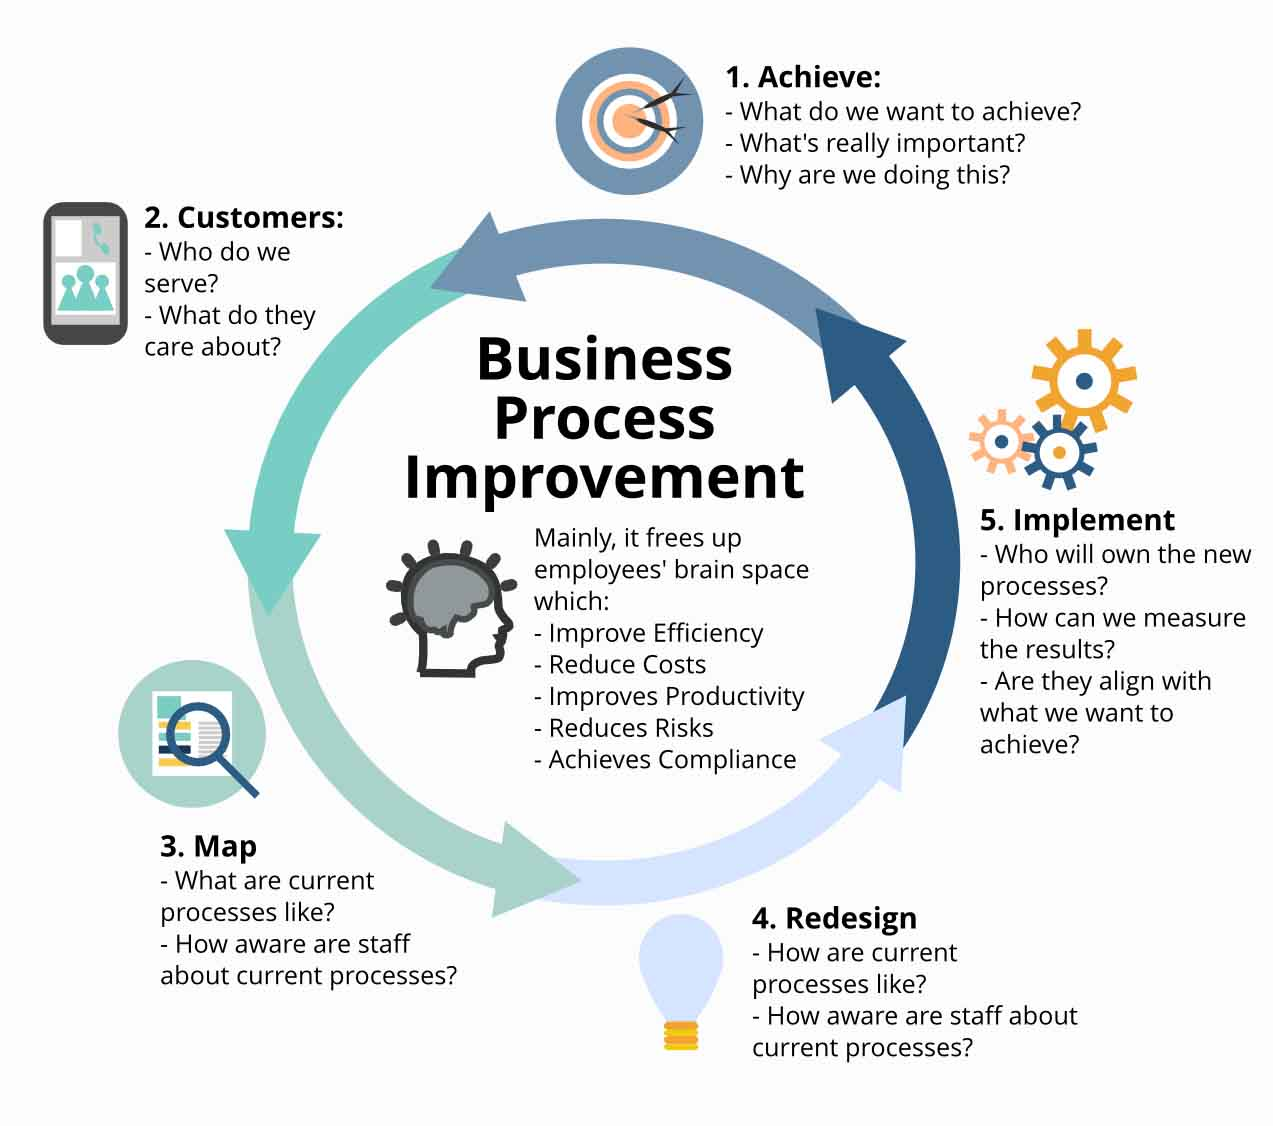 using data for business process improvement - lean six sigma principle